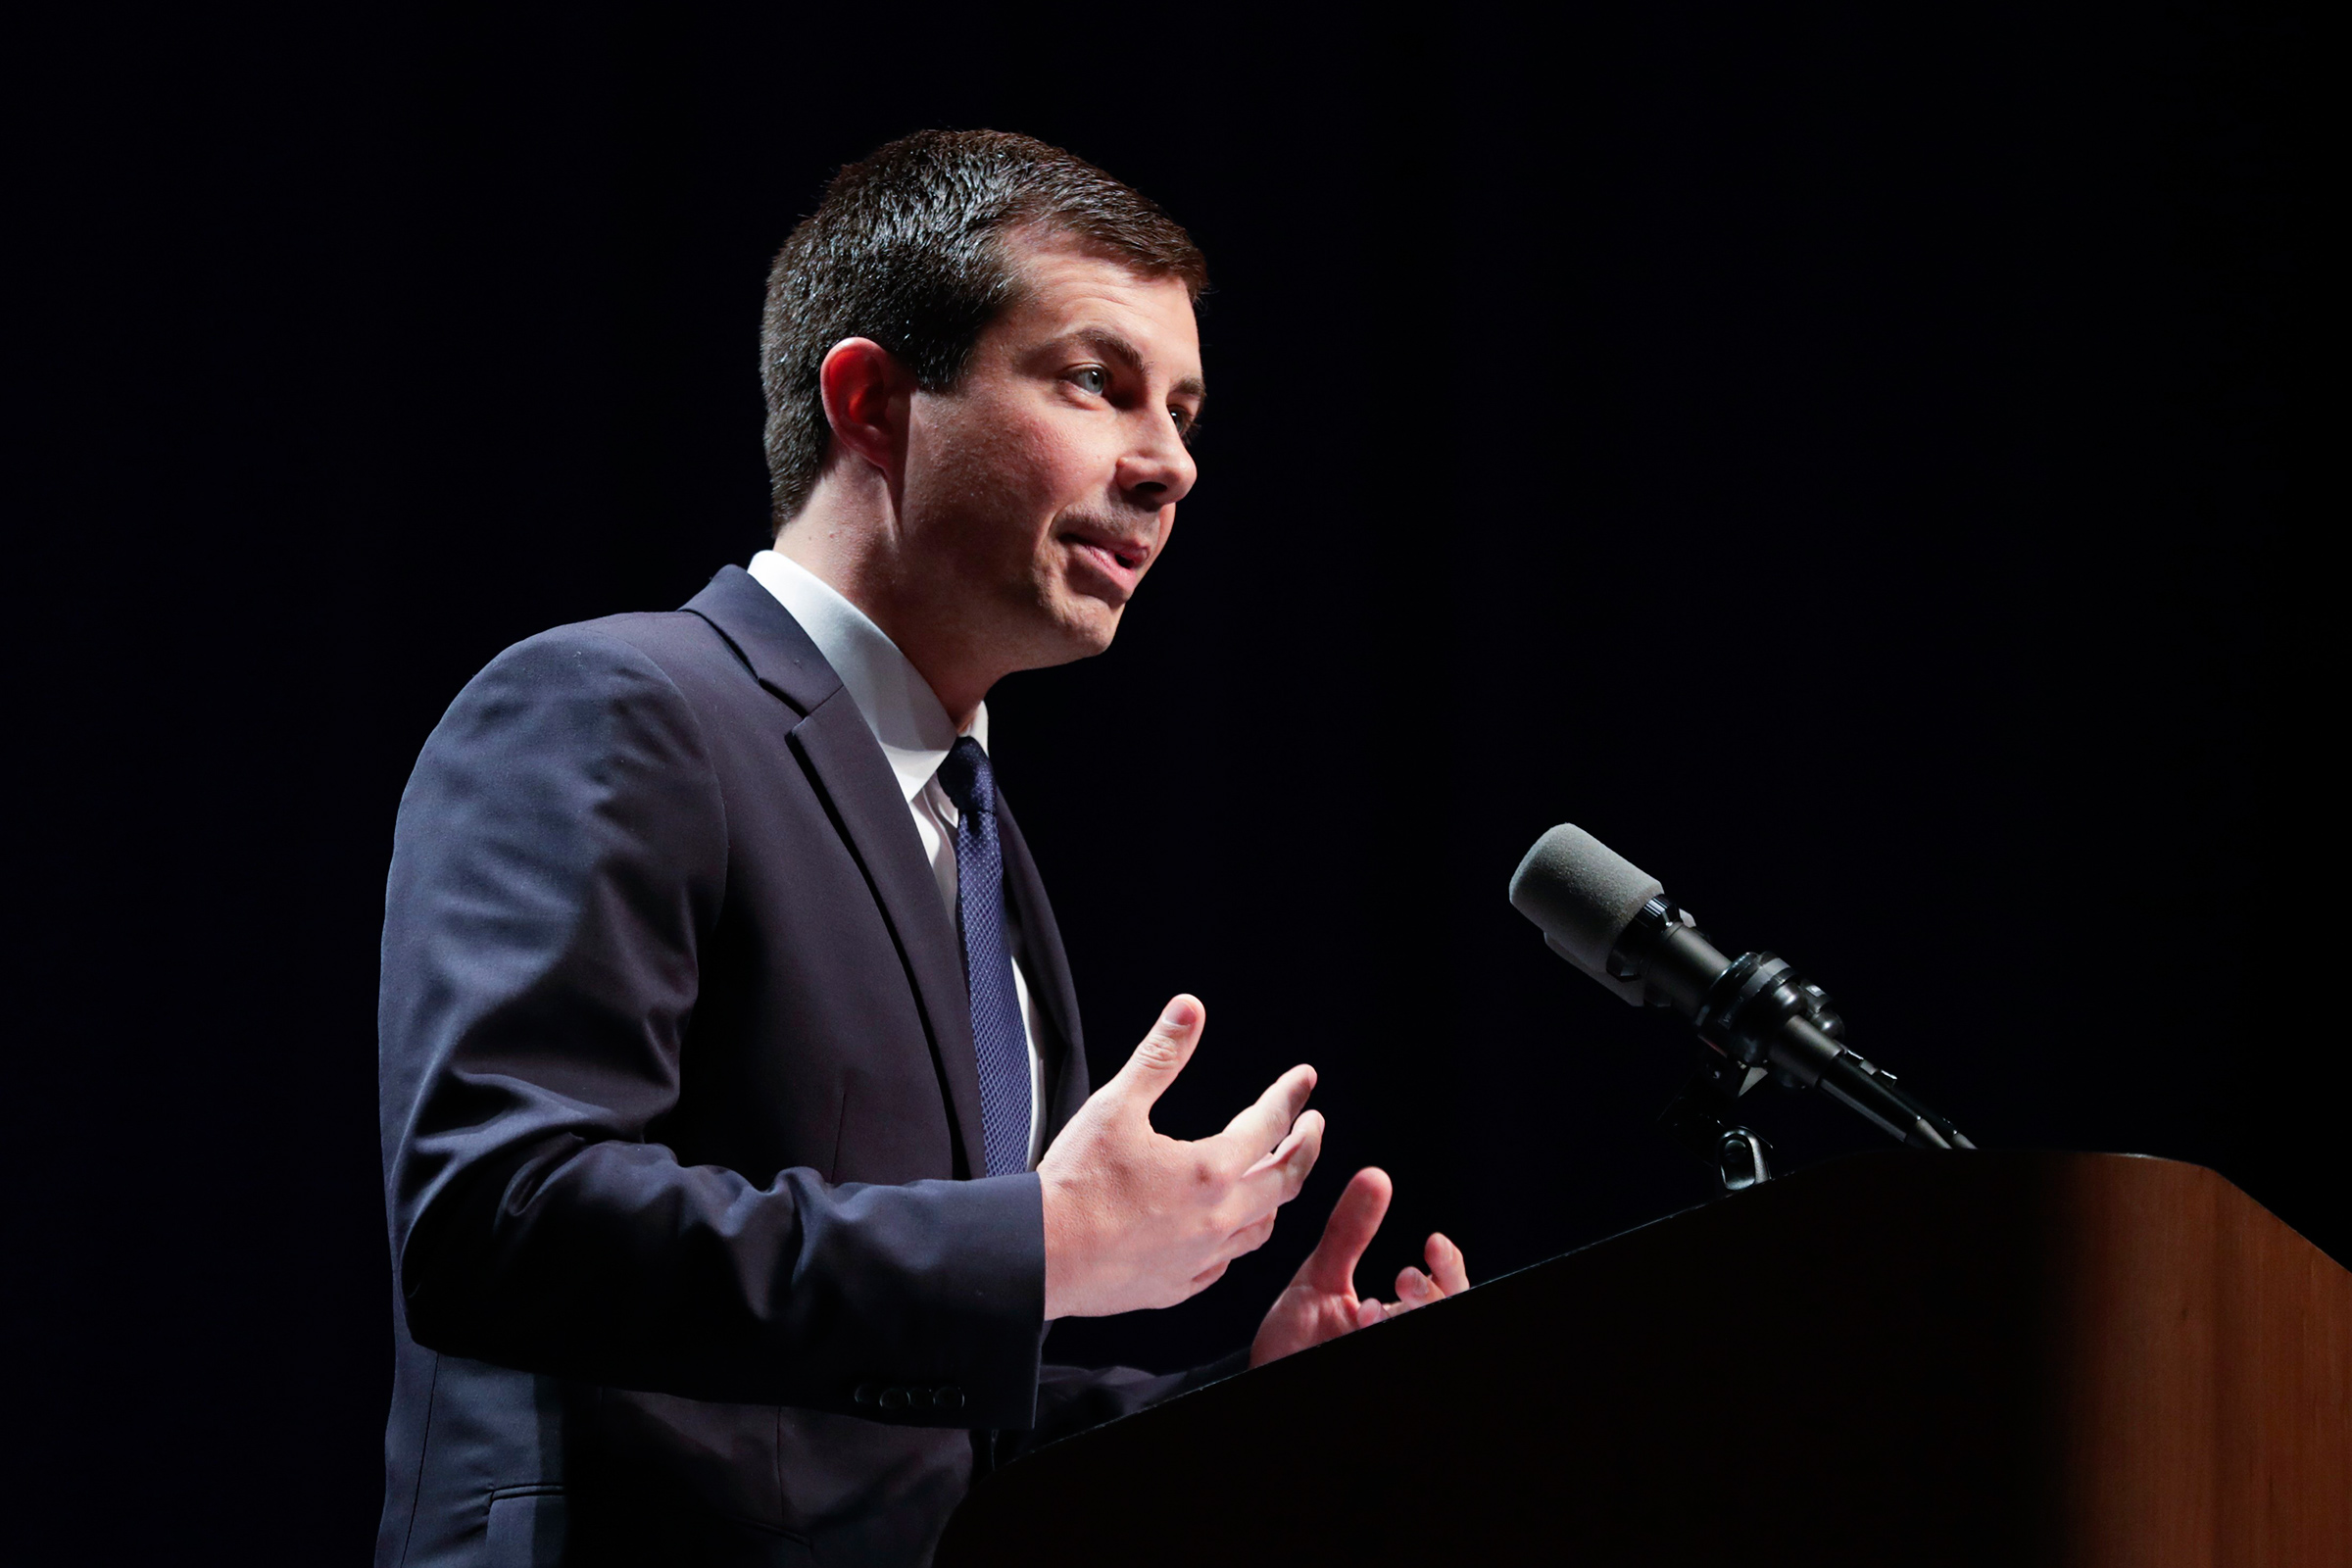 Democratic presidential candidate Mayor Pete Buttigieg delivers remarks on foreign policy and national security during a speech at the Indiana University Auditorium in Bloomington, Ind., June 11, 2019.